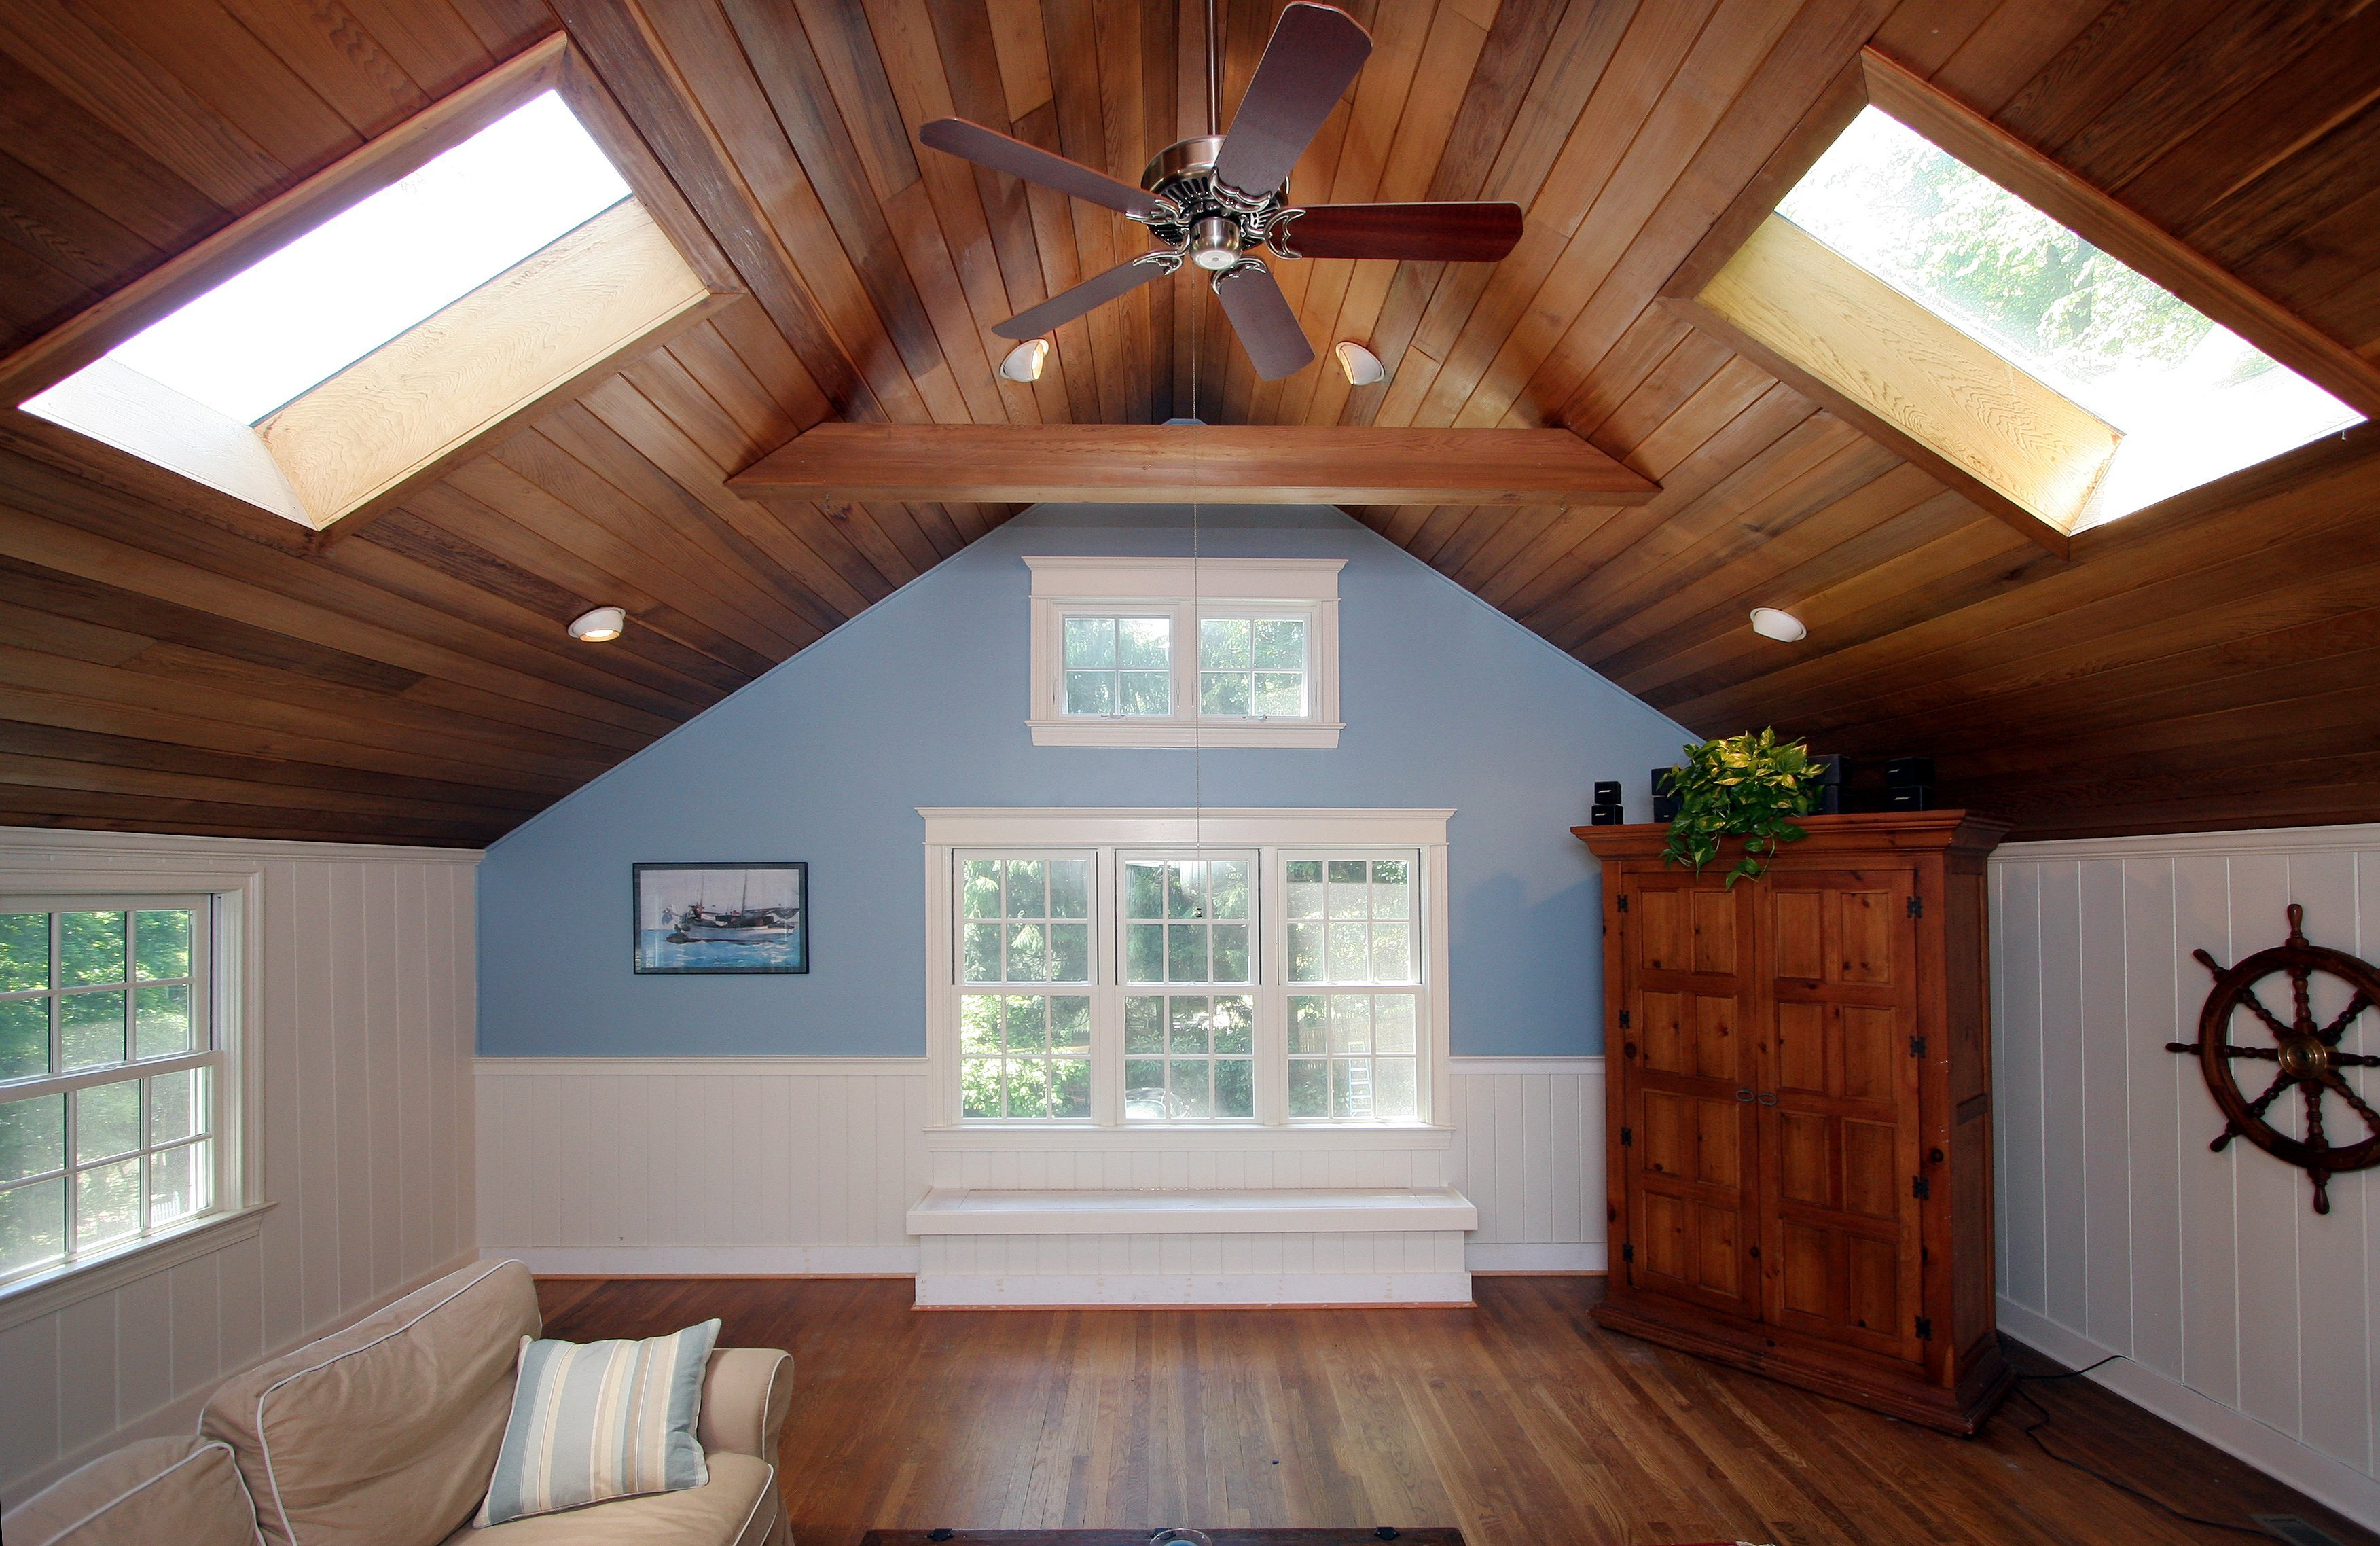 general contractor attic renovation, completed by SIP Building Solutions - Westport, Fairfield, Stamford, Greenwich, Danbury CT